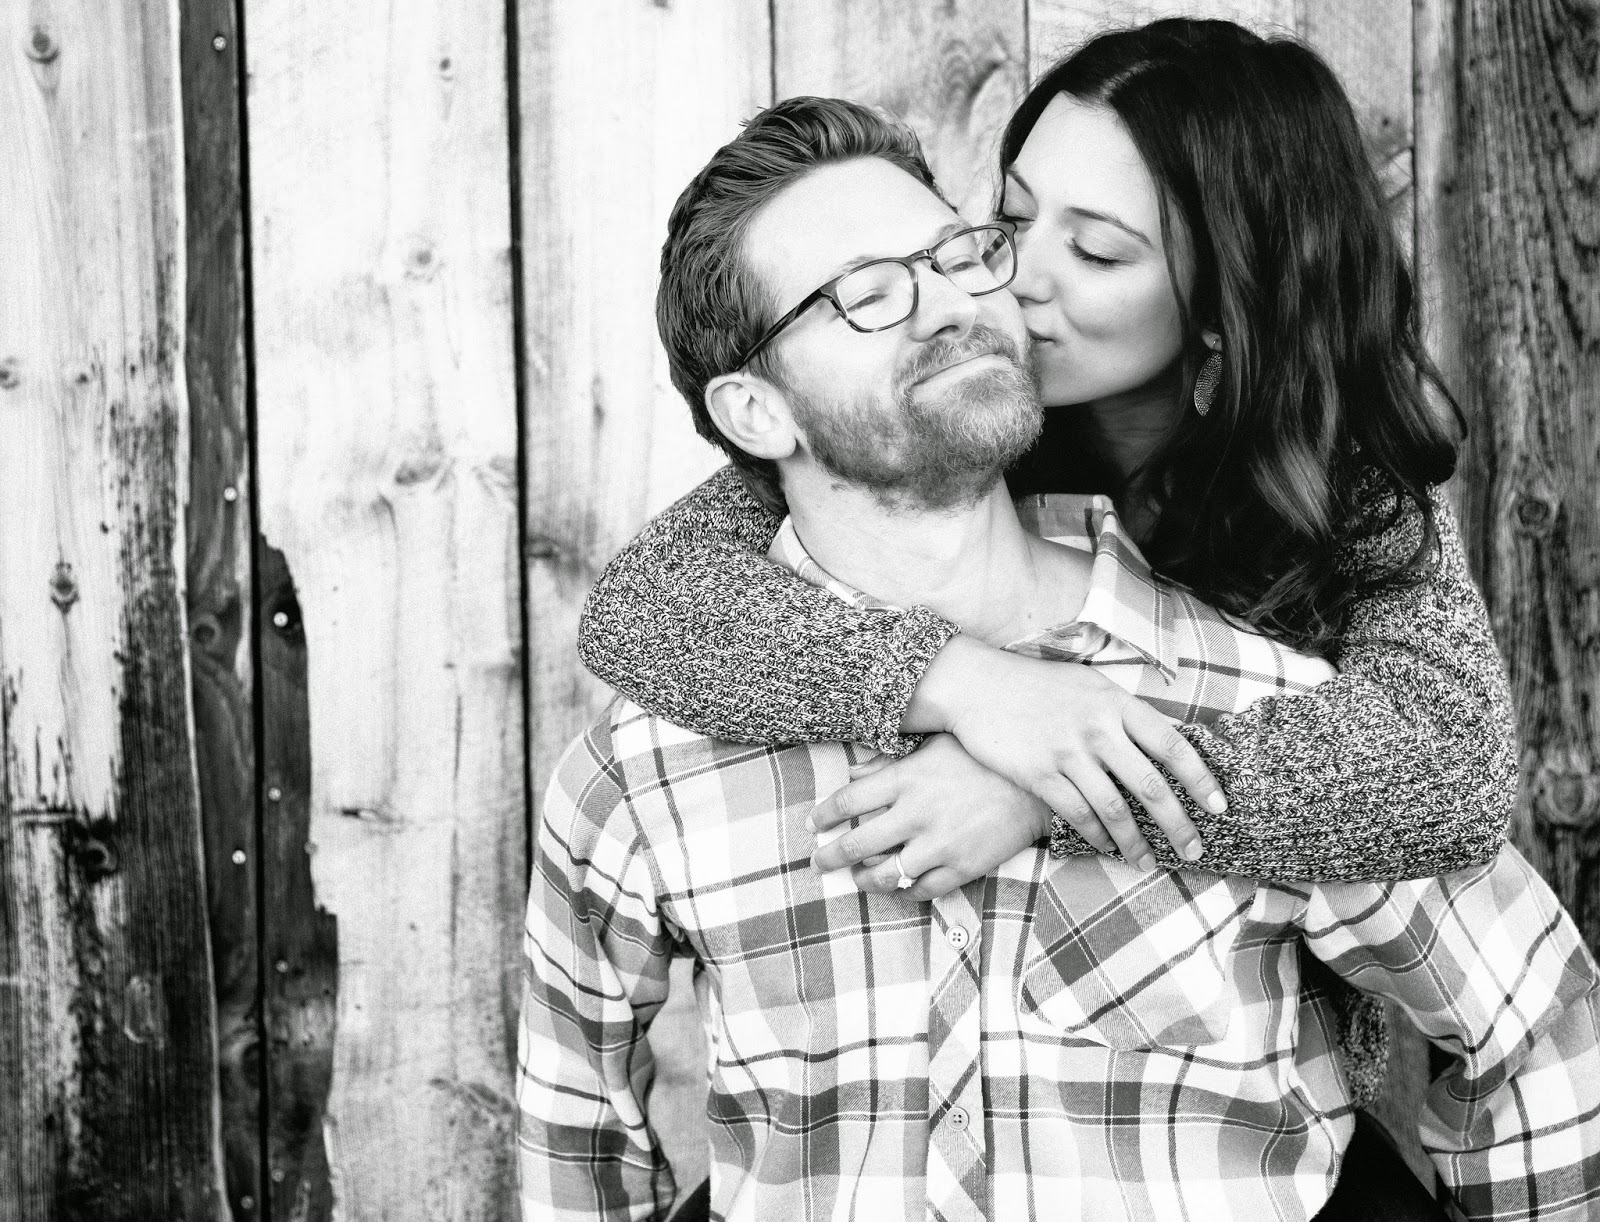 couples photography, couples portrait, black and white photography, Sarah Venema, Colorado photographer